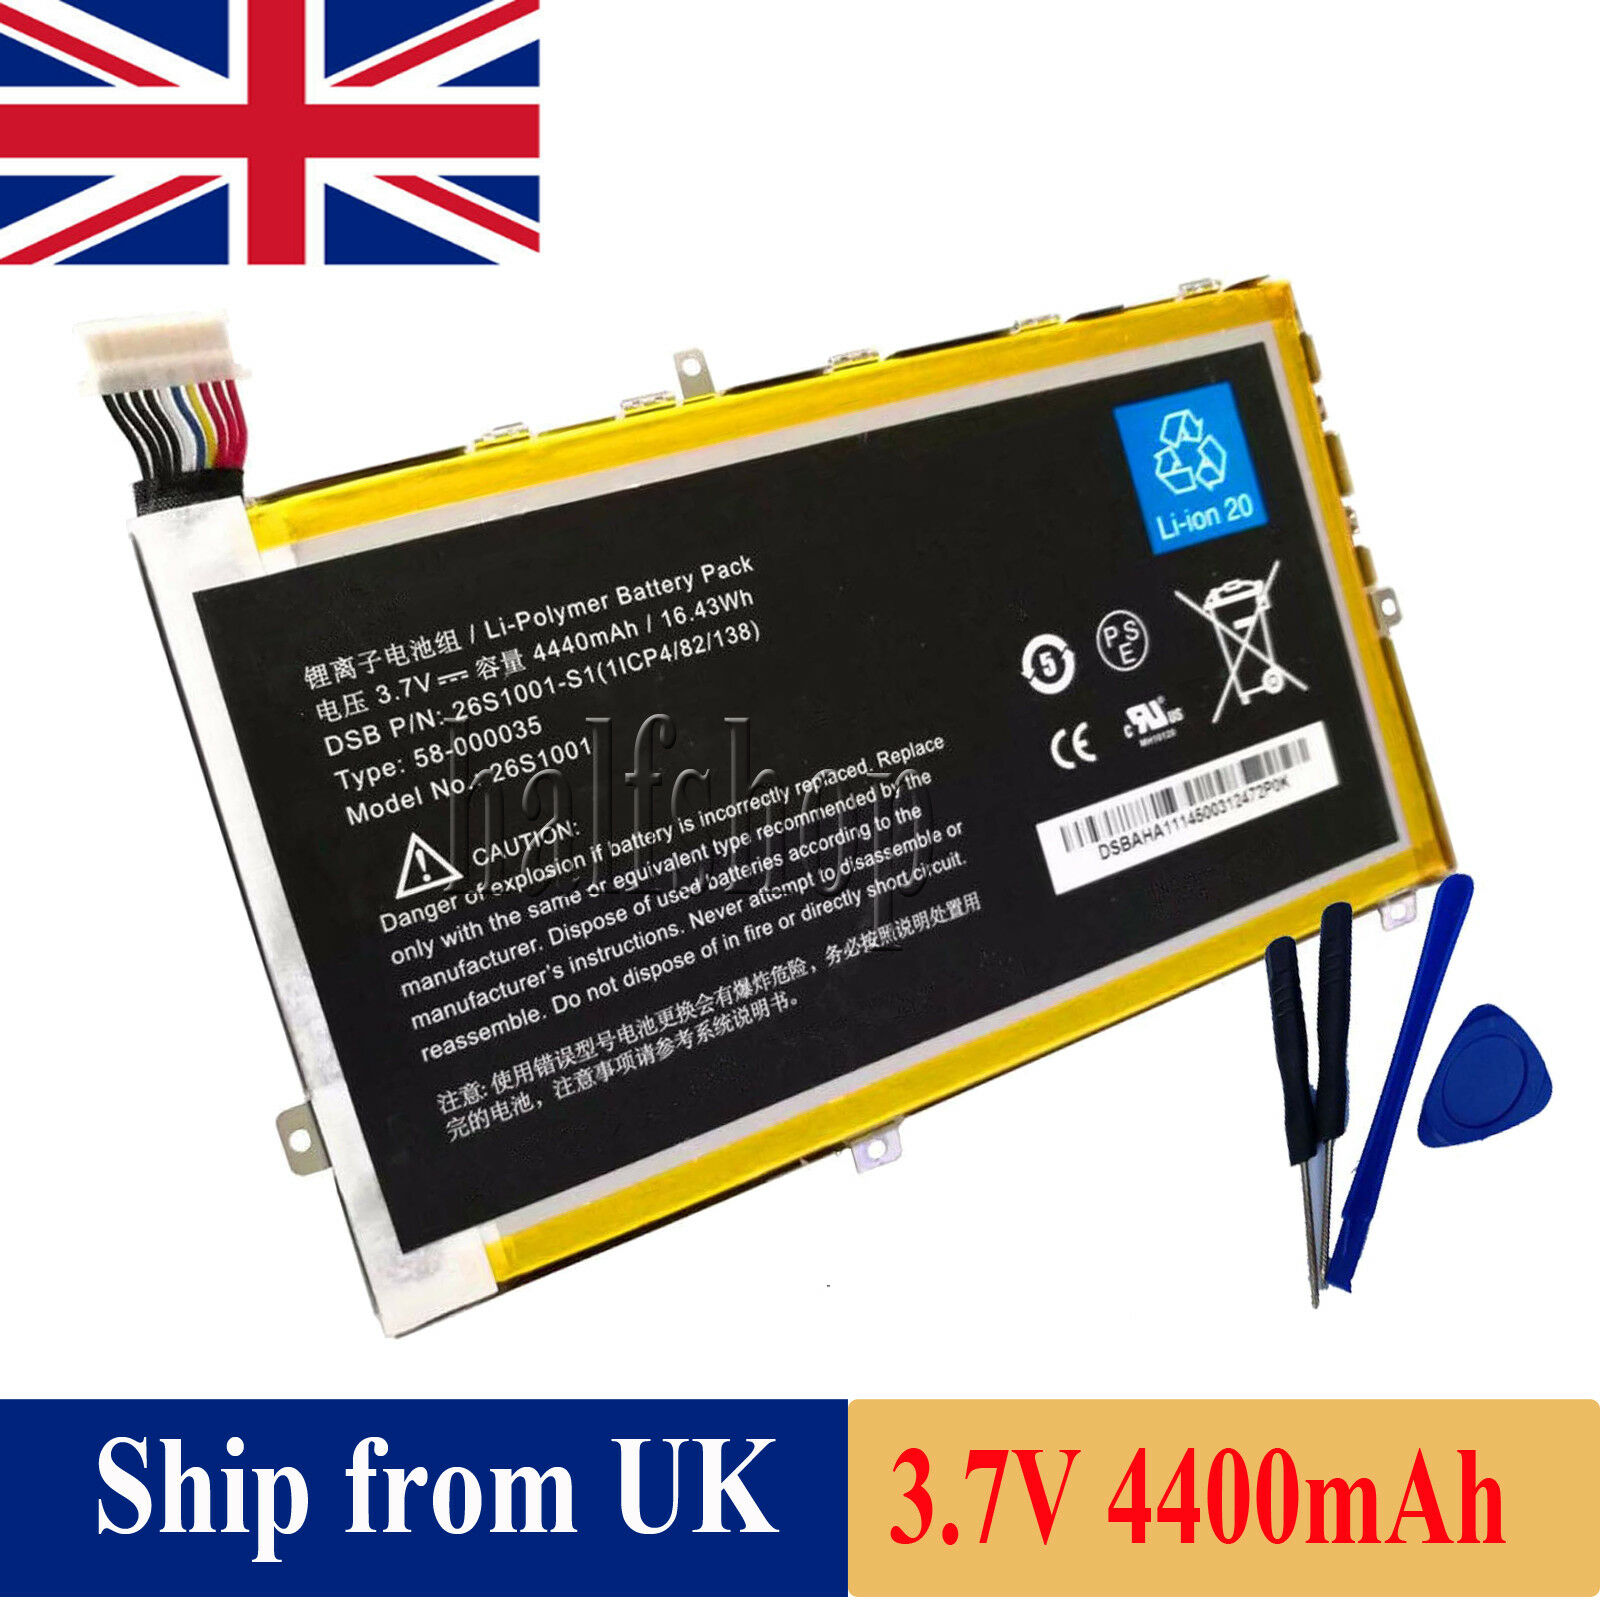 Battery For Amazon Dr A015 26s1001 1a Kindle Fire Hd X43z60 Kindle